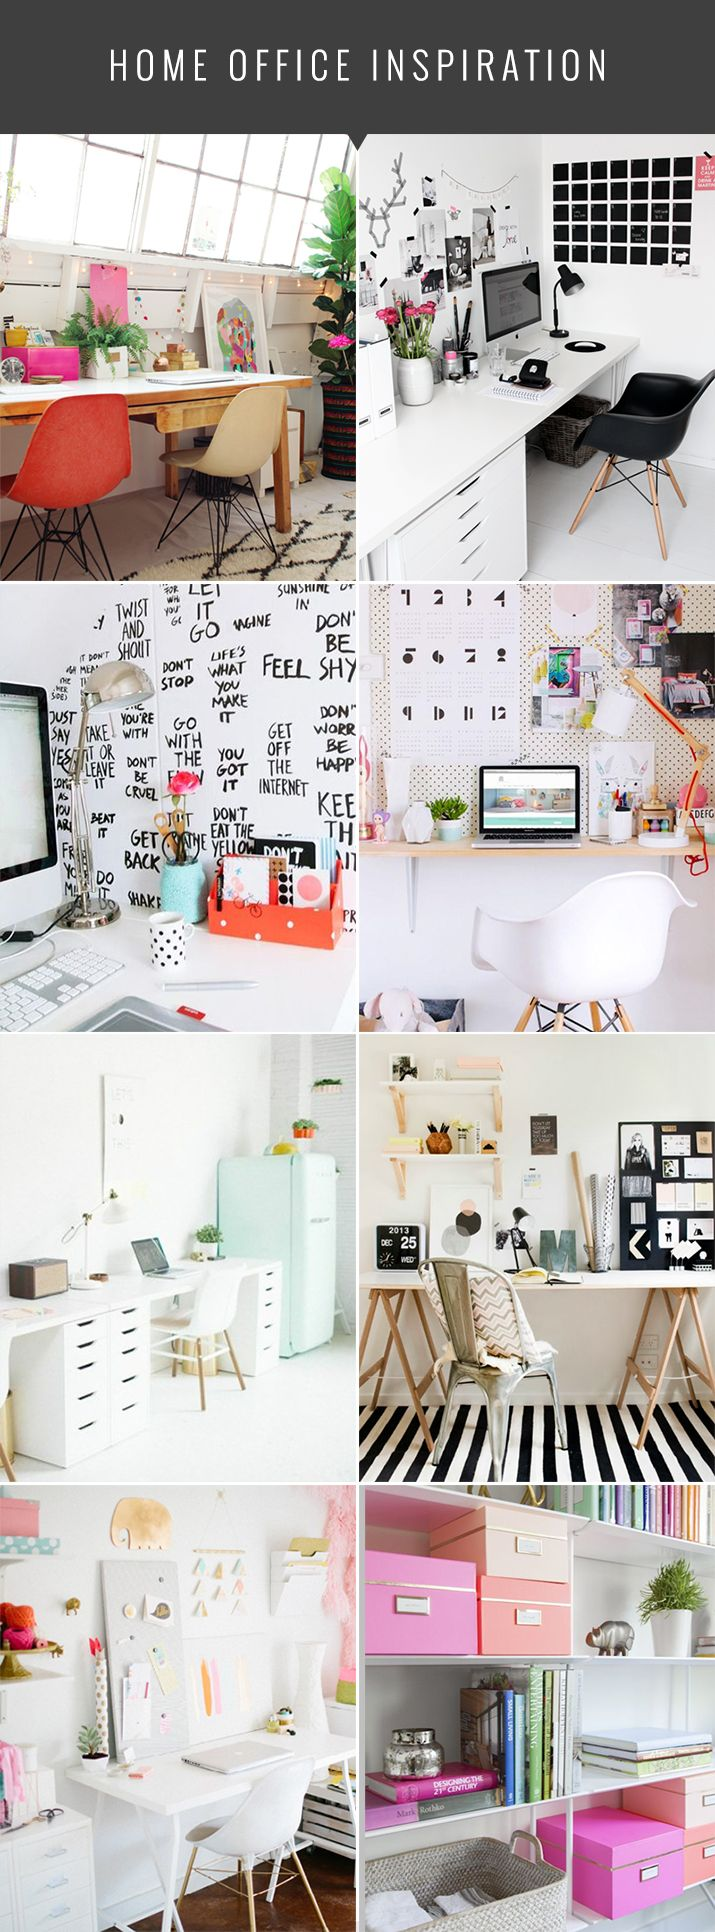 Home Office Inspiration - The Nectar Collective